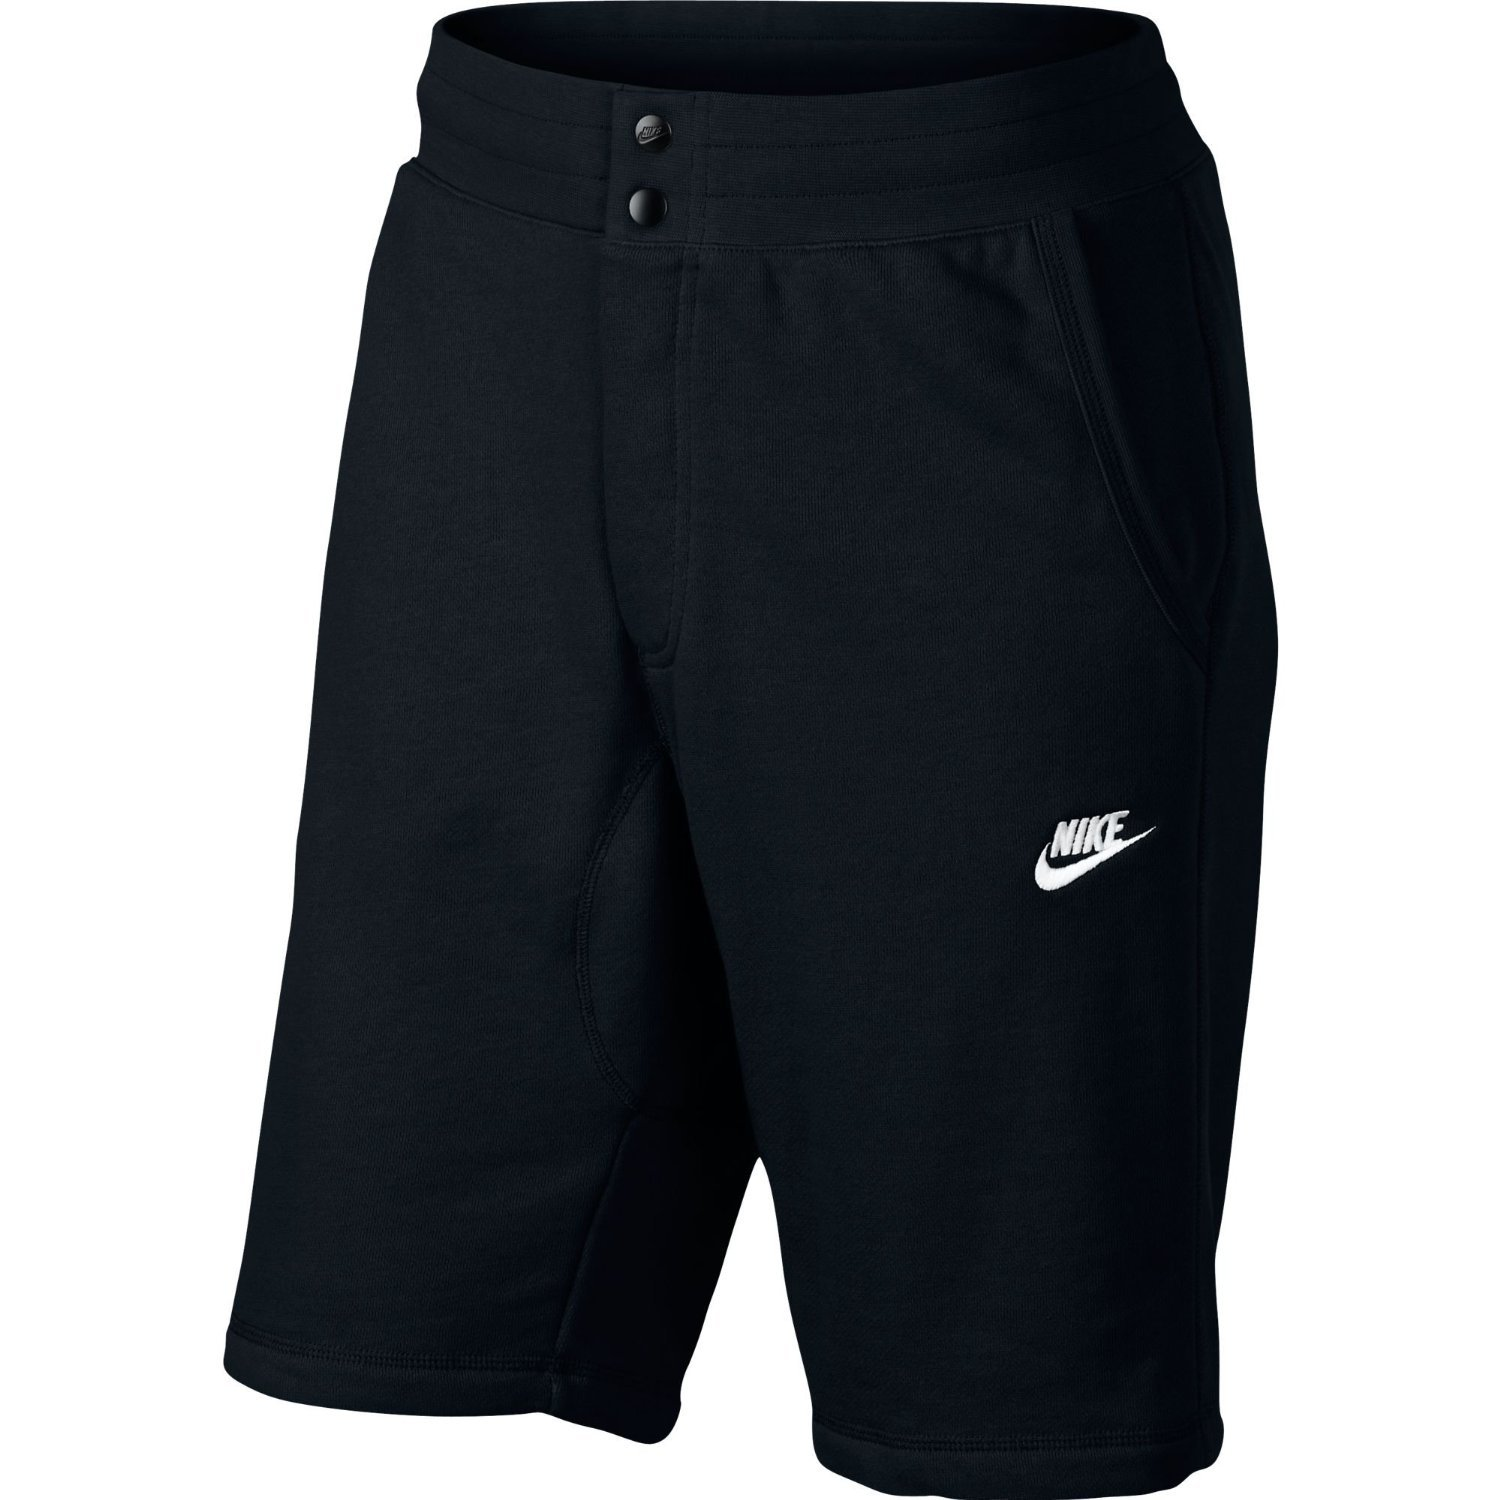 Šortky Nike V442 FT SHORT